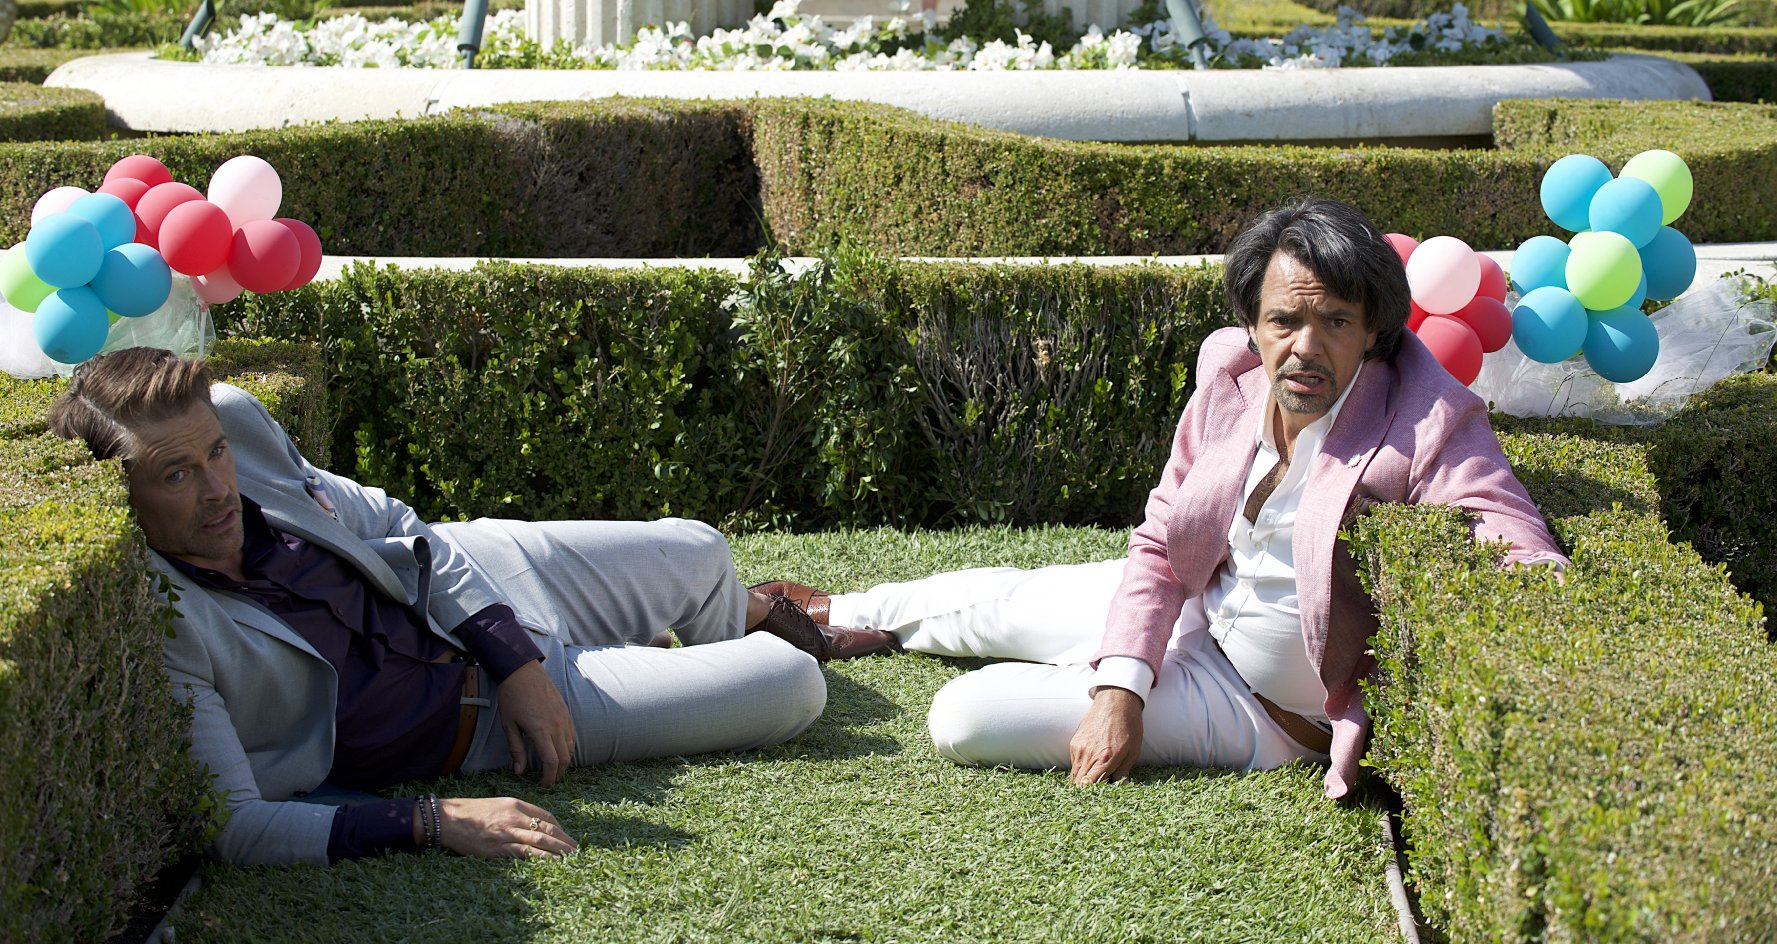 One Ofedies Breakout Stars Over The Past Few Years Is Eugenio Derbez After  Having A Successful